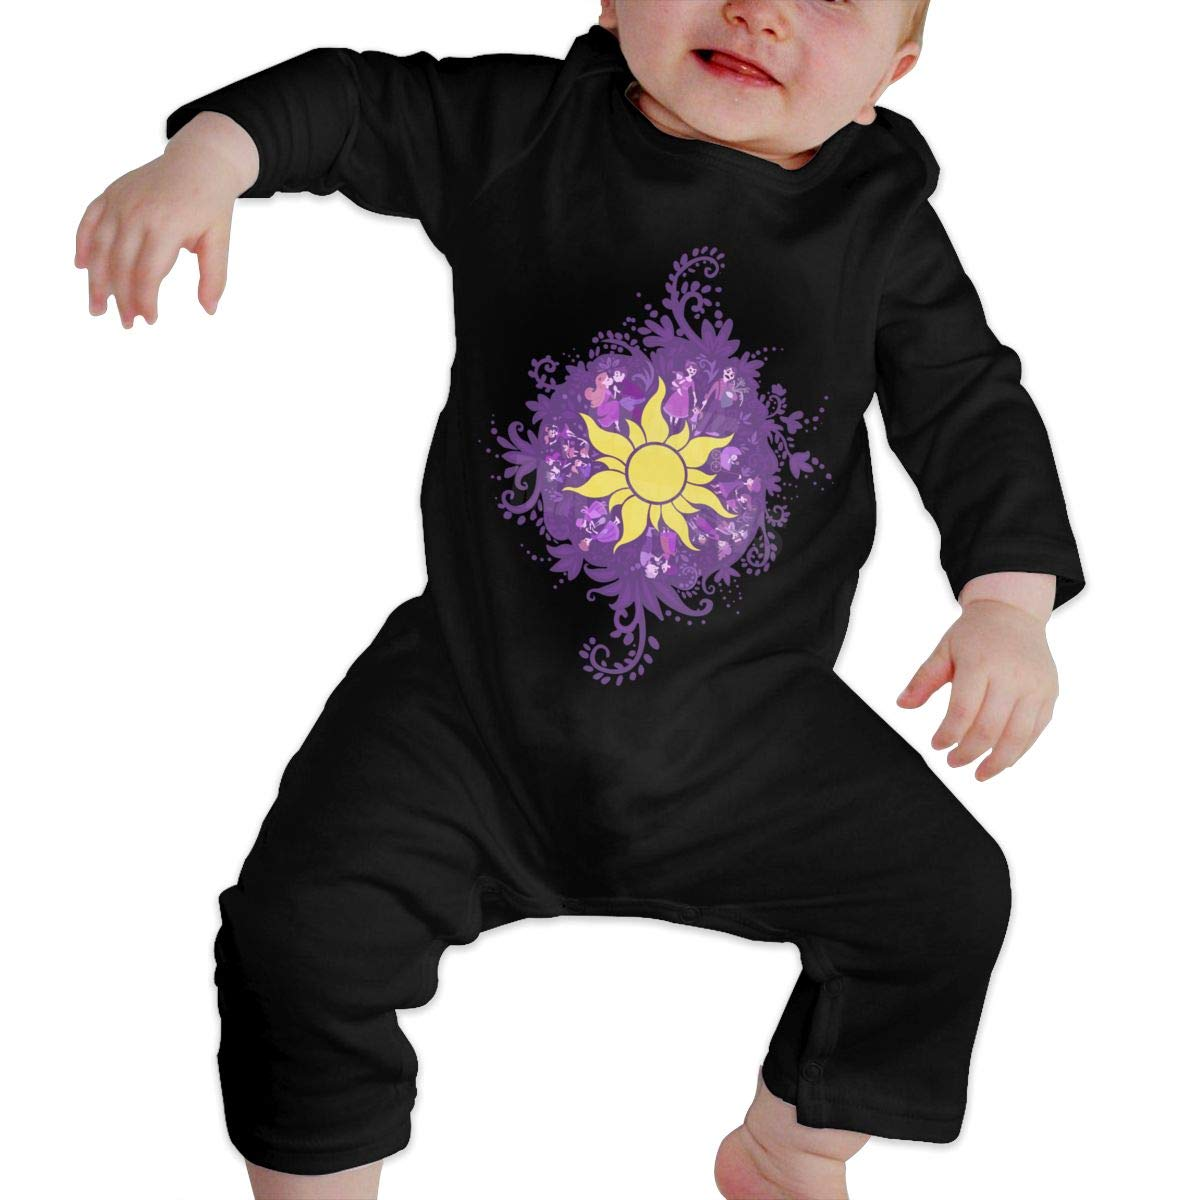 Tangled Sun Symbol Newborn Baby Boy Girl Romper Jumpsuit Long Sleeve Bodysuit Overalls Outfits Clothes